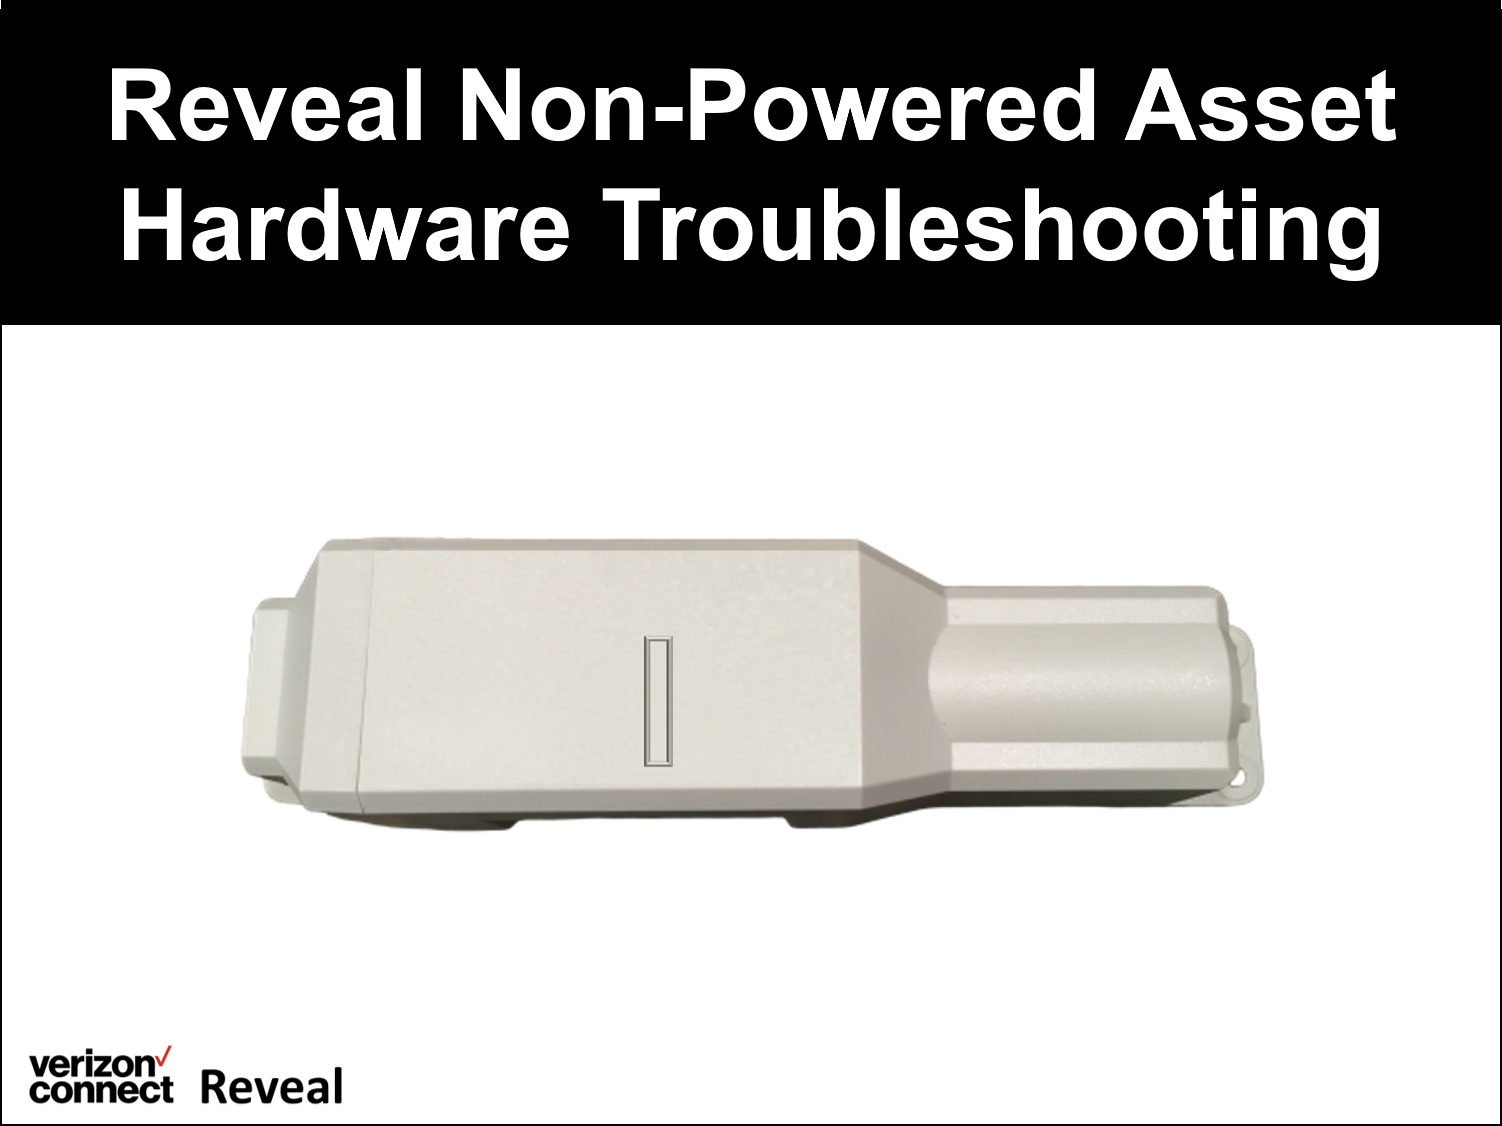 Reveal Non-Powered Asset Hardware Troubleshooting Video